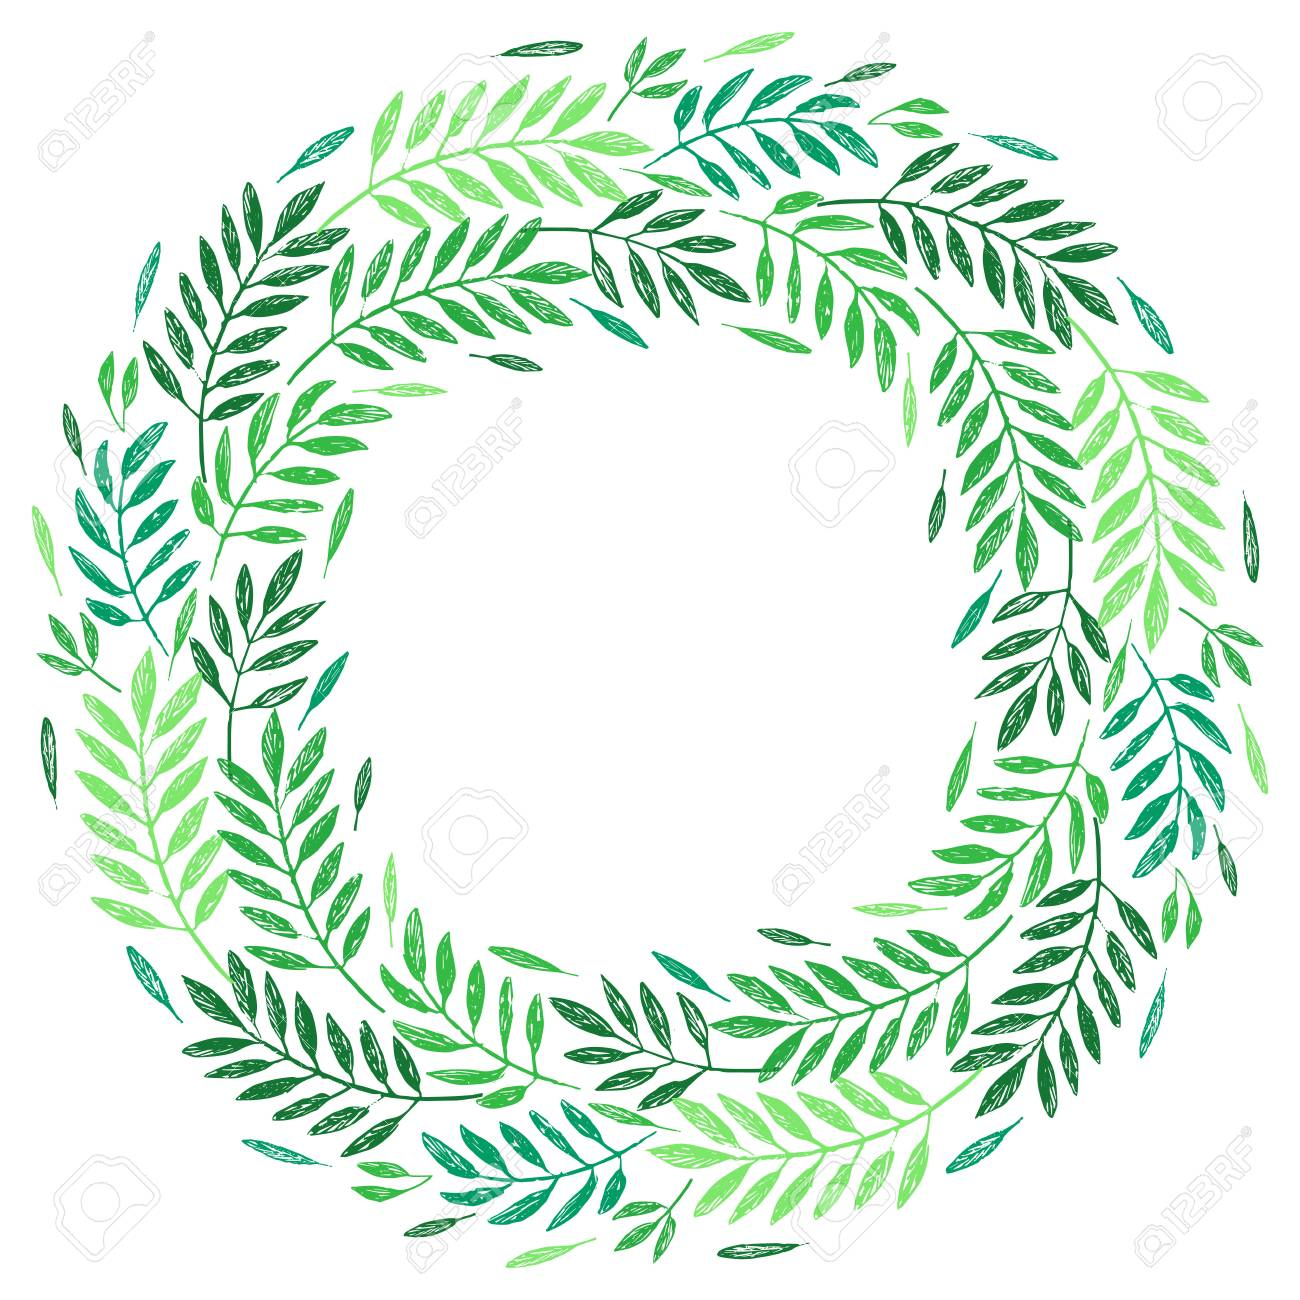 tropical palm leaves foliage wreath round frame vector